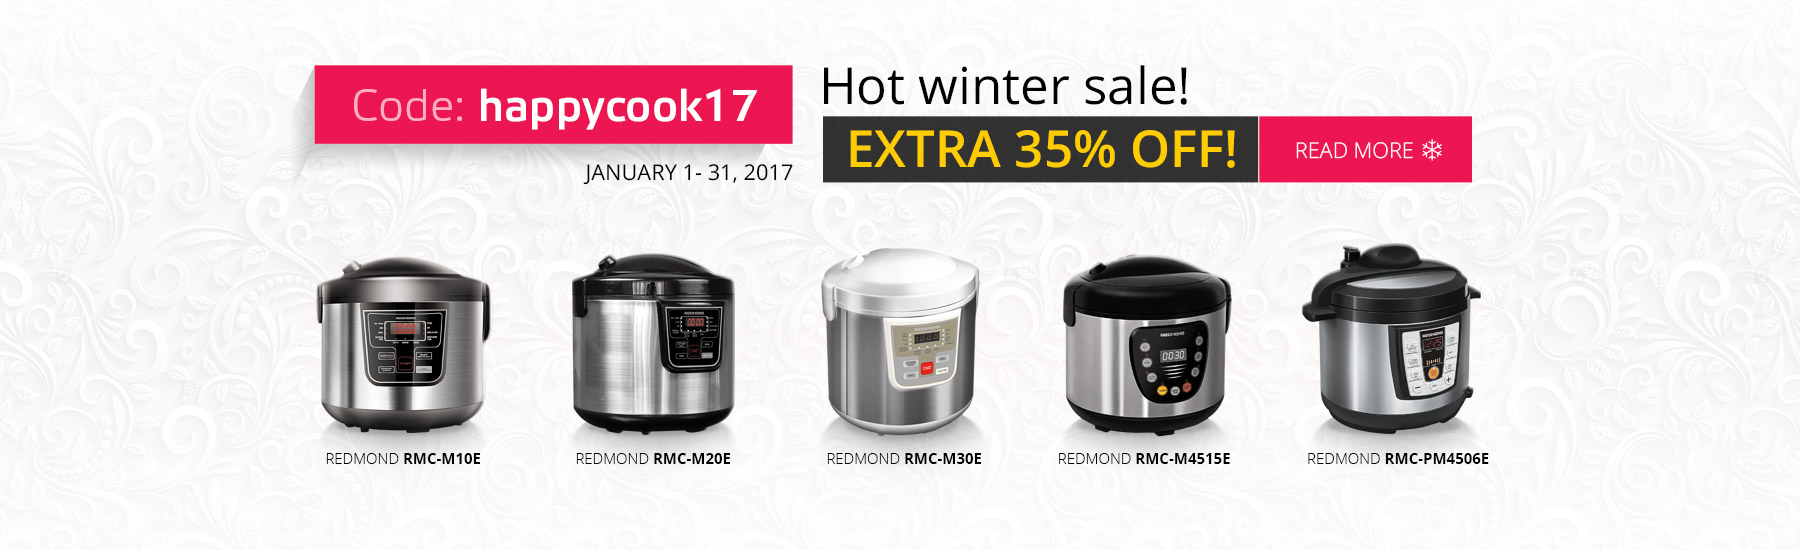 Hot Winter Sale